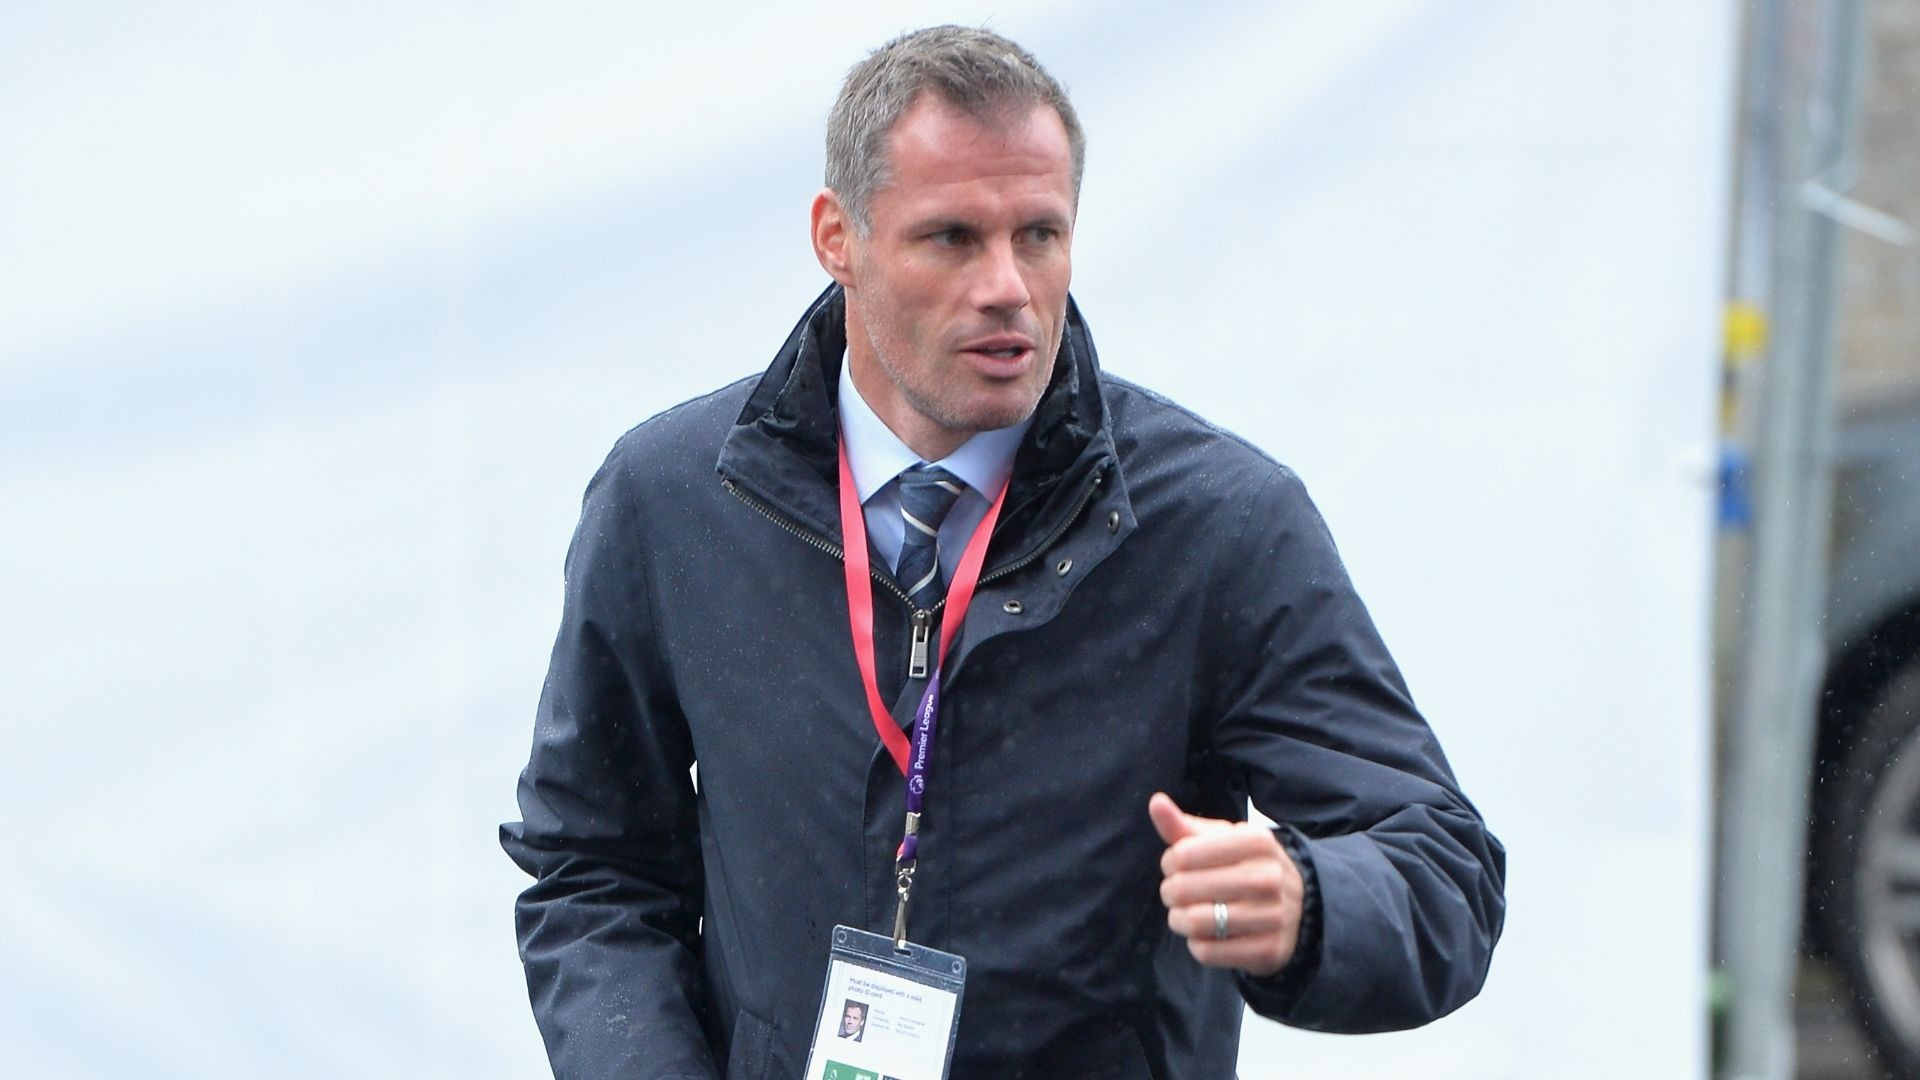 Jamie Carragher during the Premier League match between Burnley and Liverpool at Turf Moor on August 20, 2016 in Burnley, England.